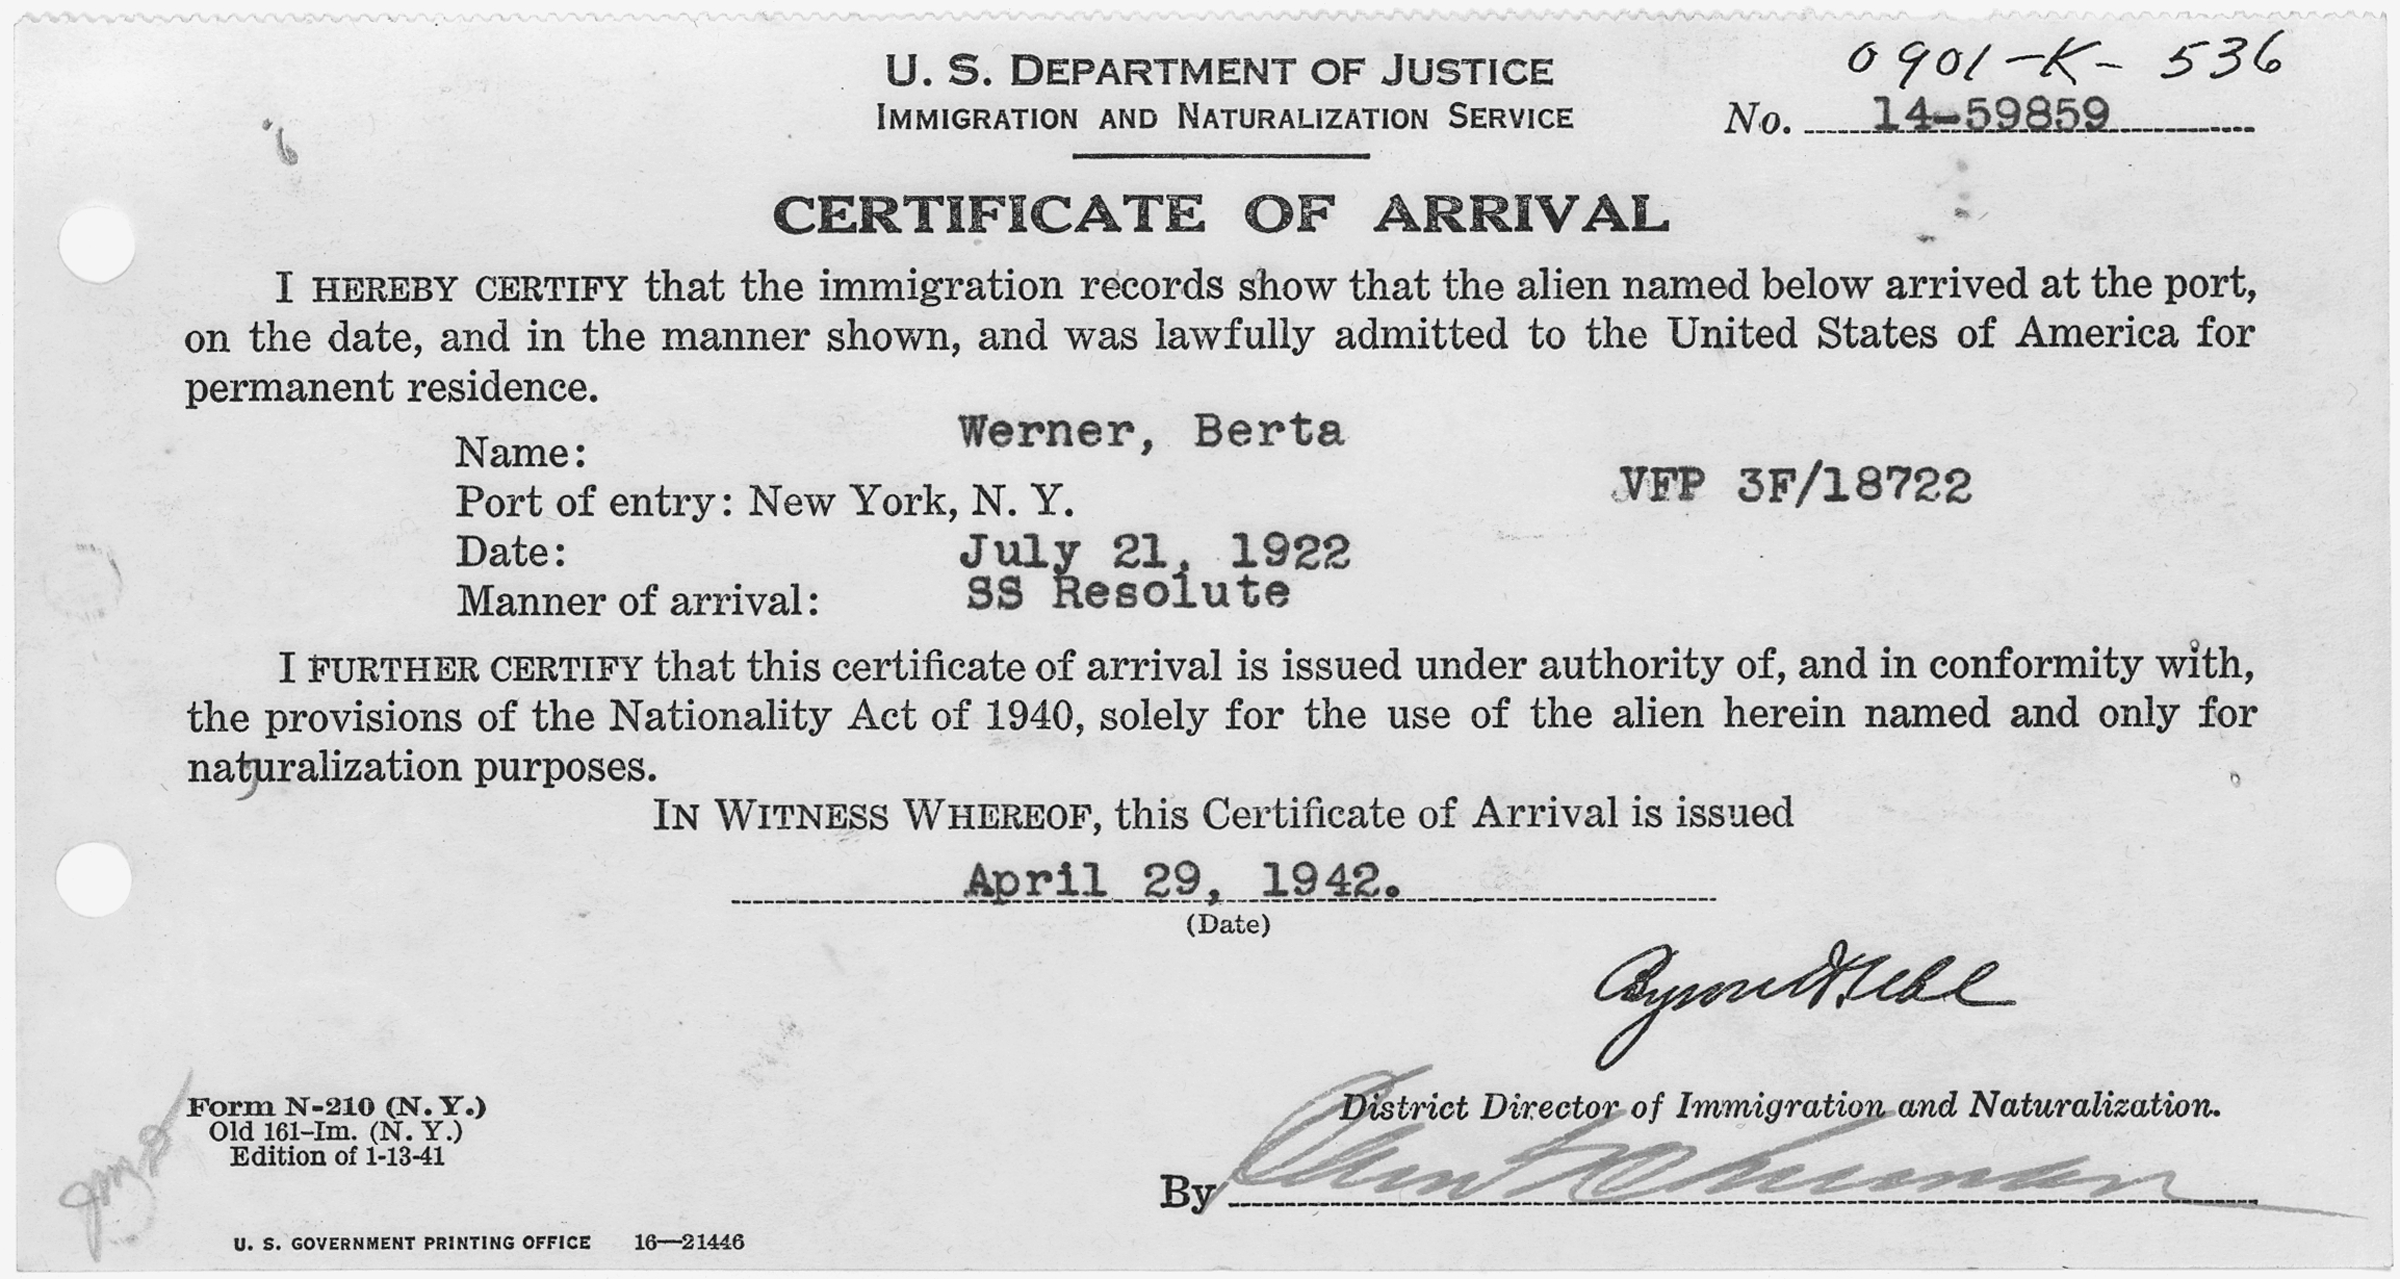 Filecertificate of arrival for berta werner nara 282038g filecertificate of arrival for berta werner nara 282038g yadclub Image collections